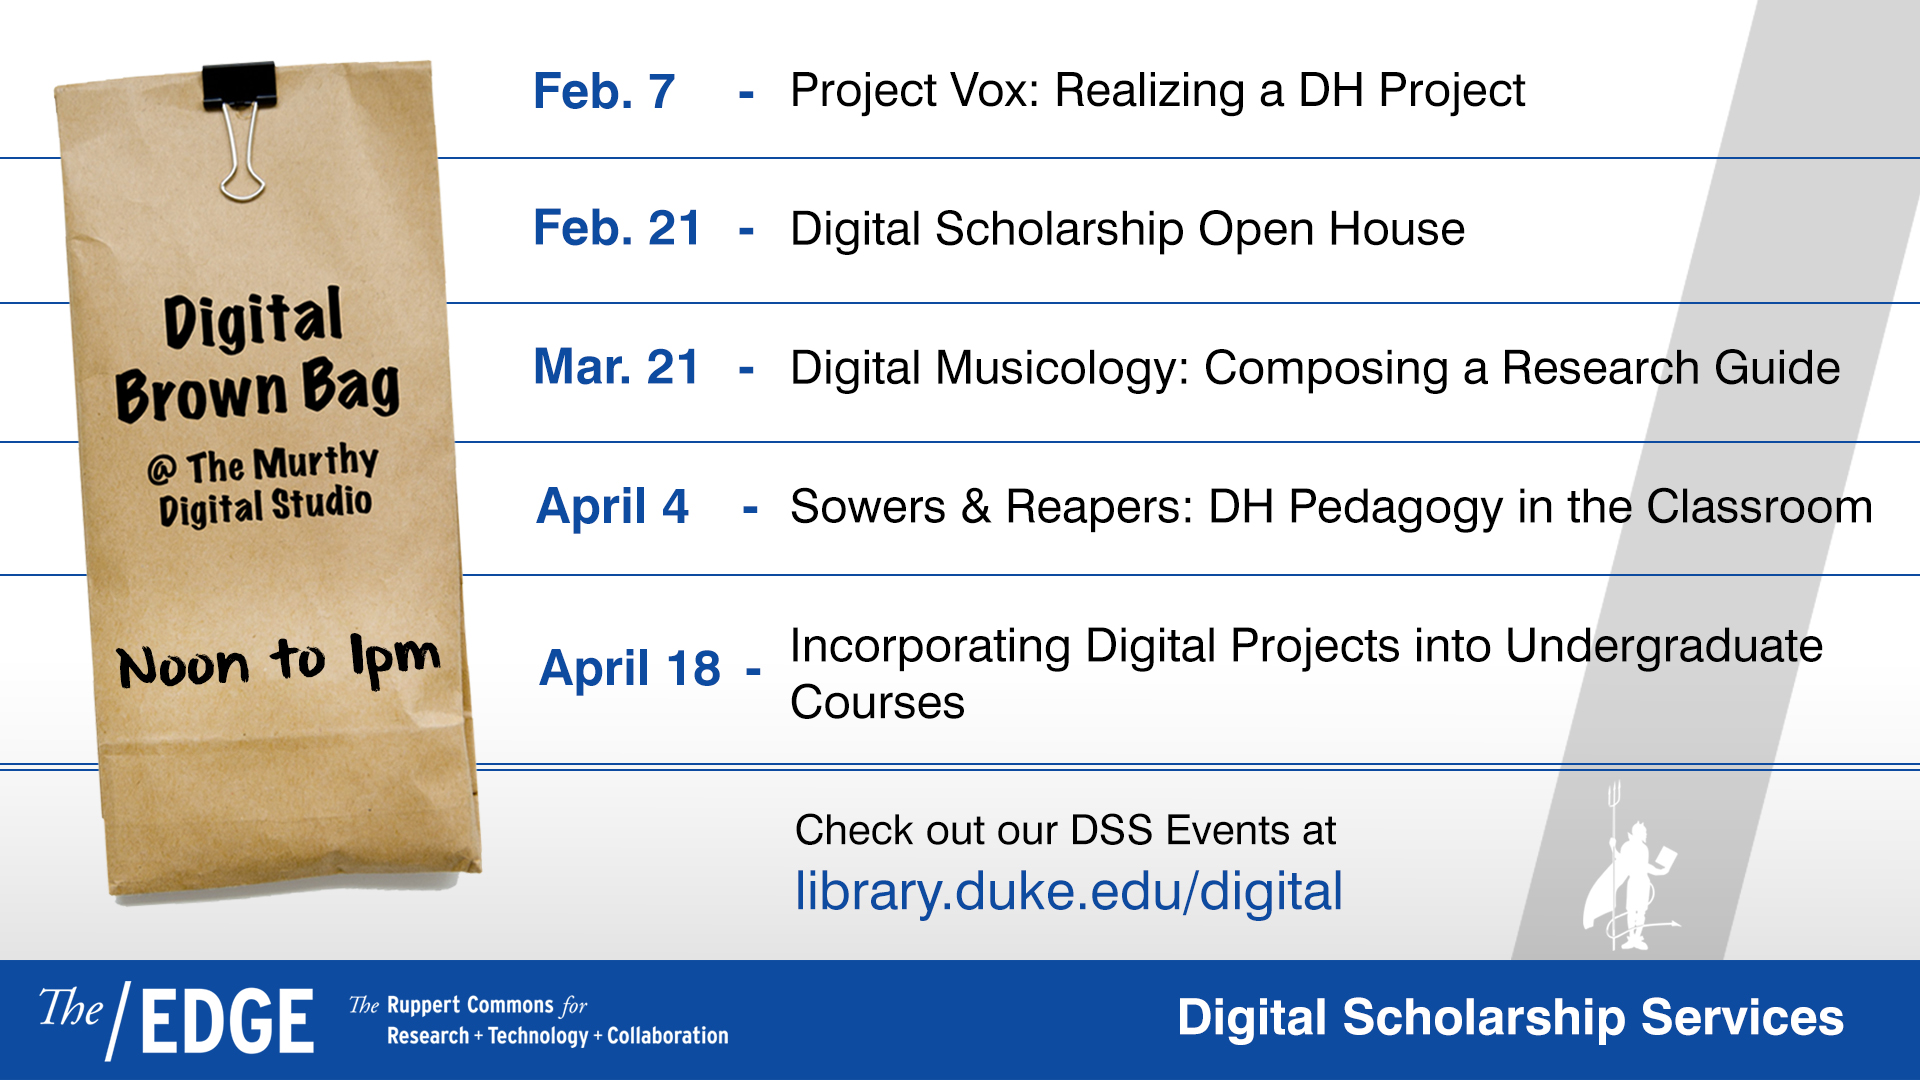 Digital Scholarship Open House